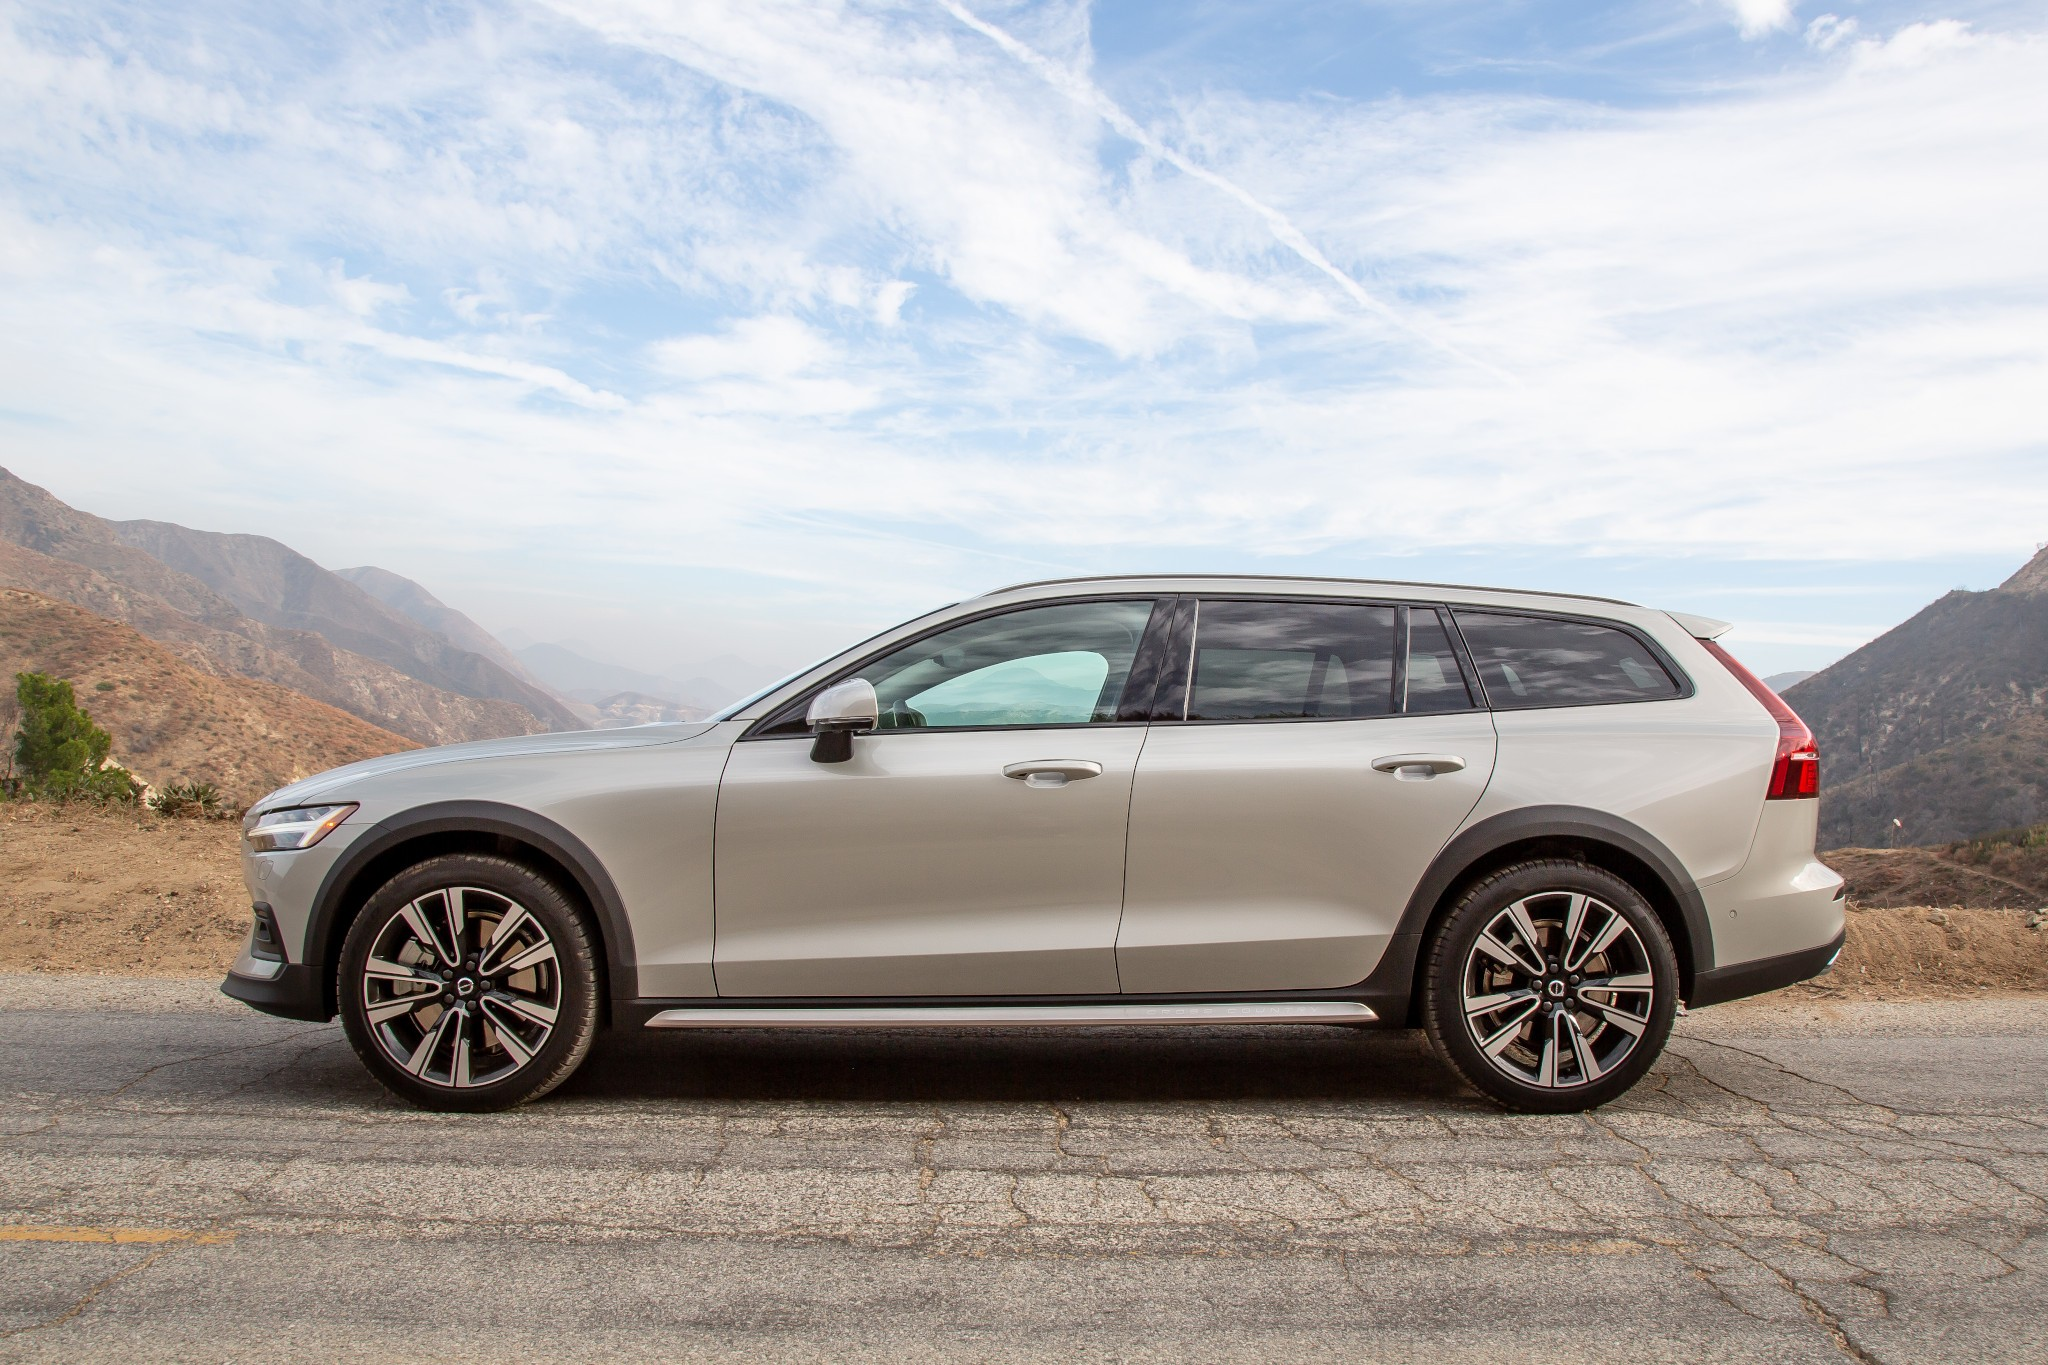 2020 Volvo V60 Cross Country Review: You Raise Me Up